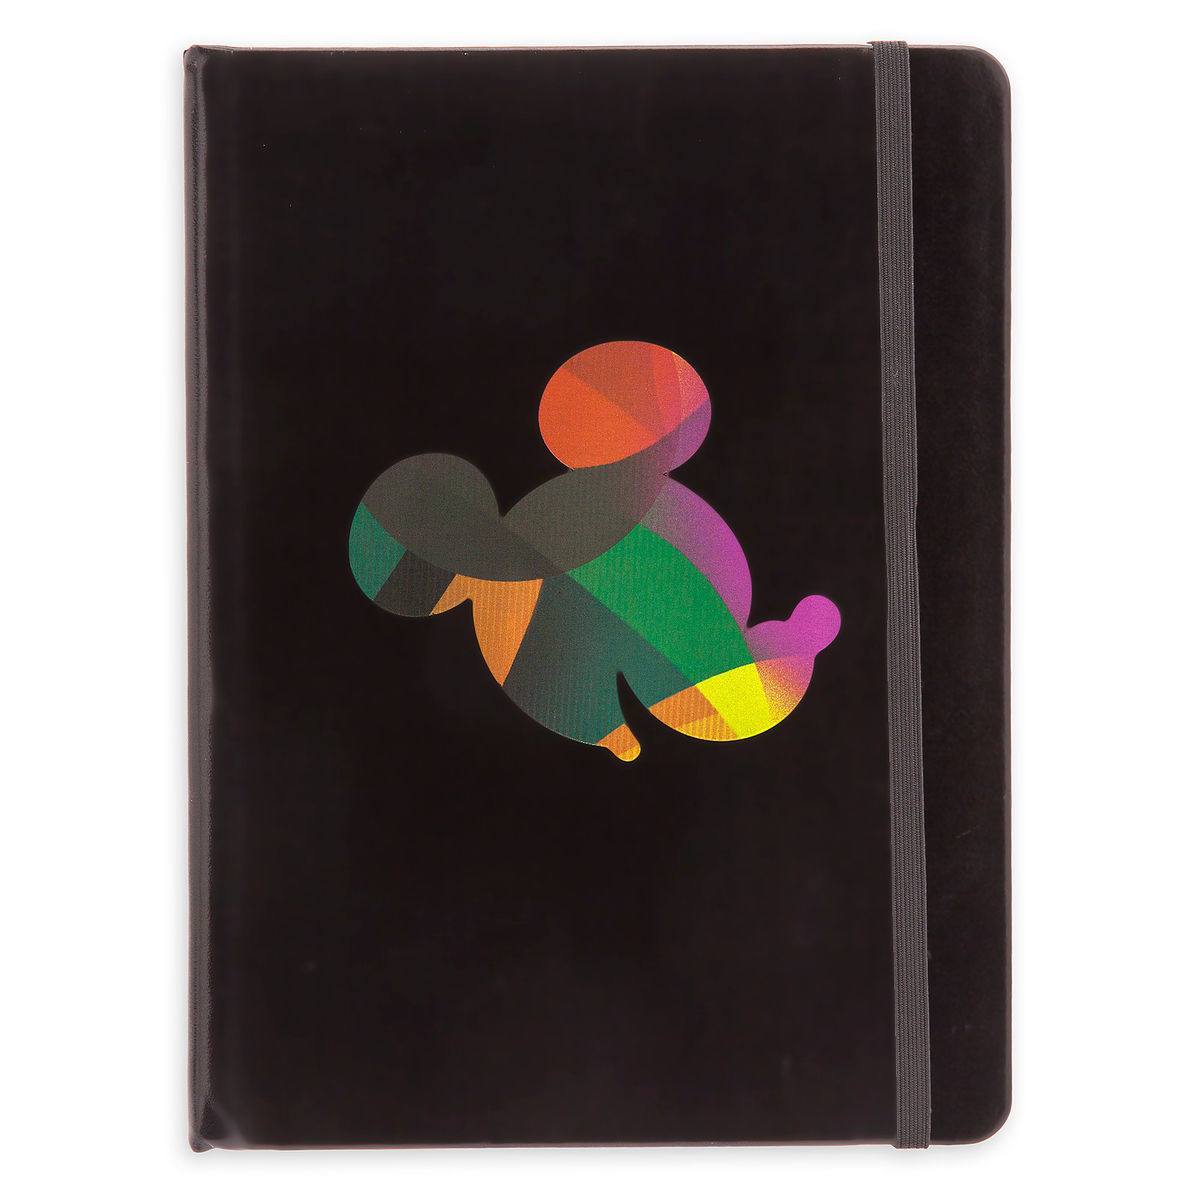 Mickey Mouse Mickey The True Original Exhibition Journal Black